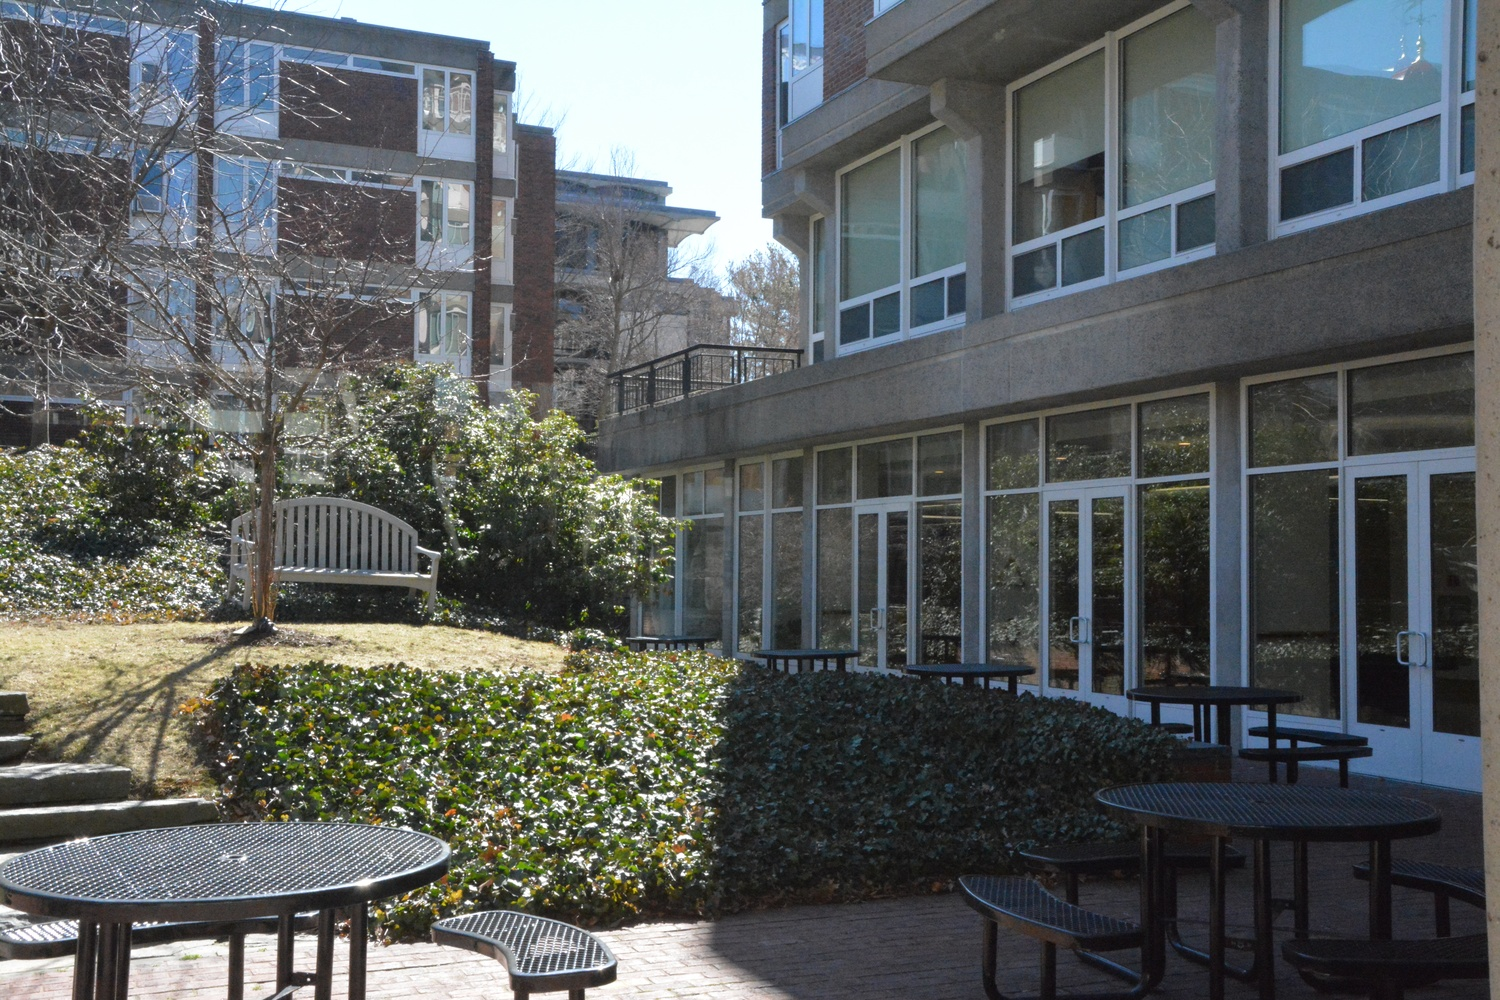 Currier Patio